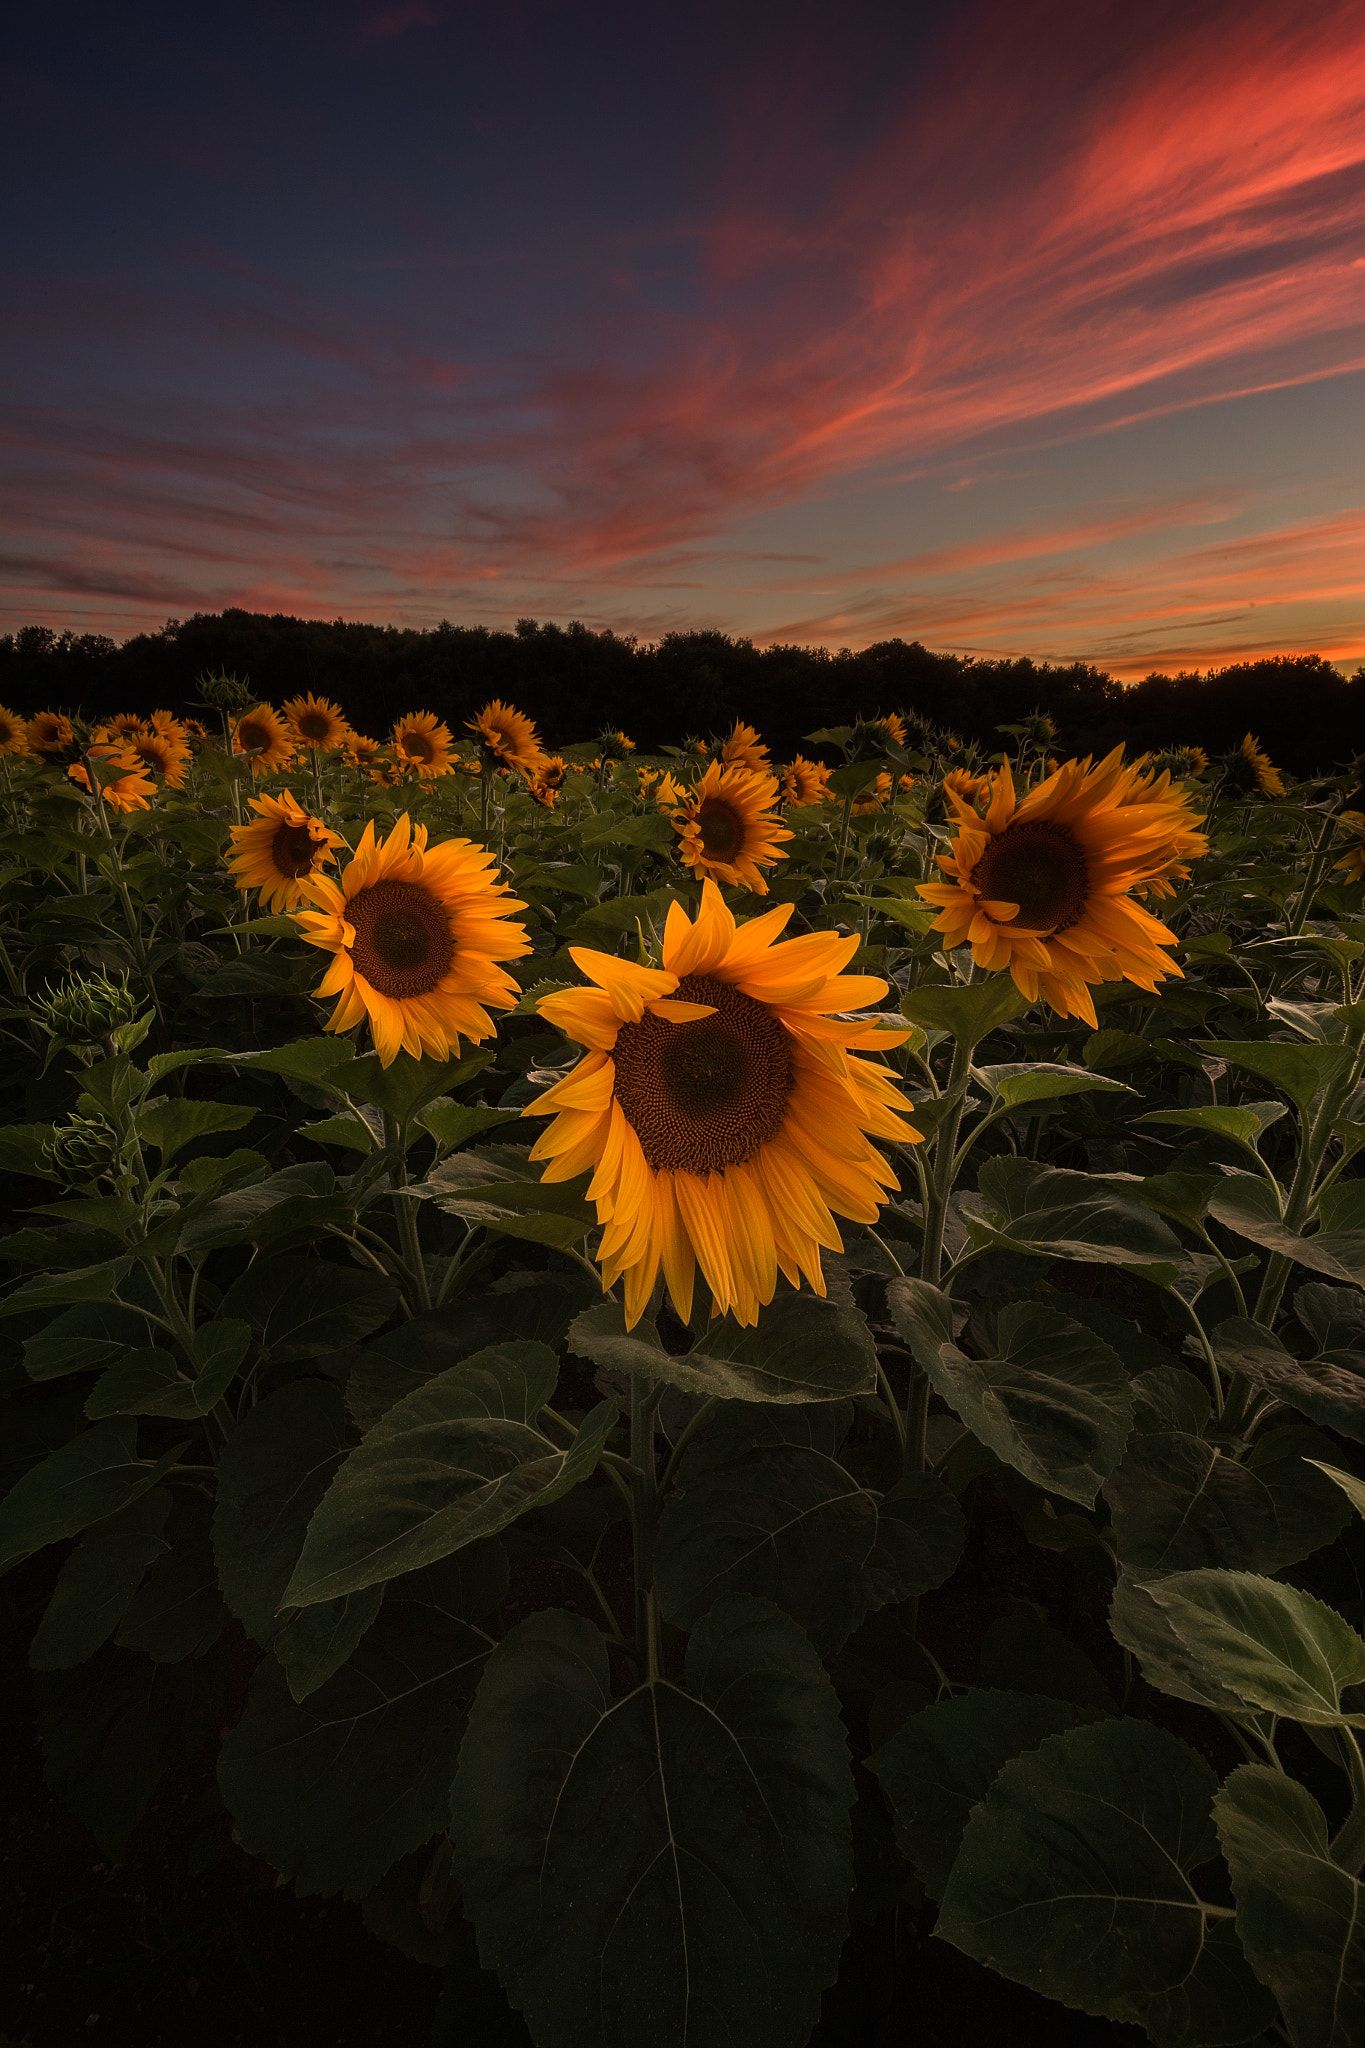 Sunflowers - ... (With images) | Sunflower wallpaper ...